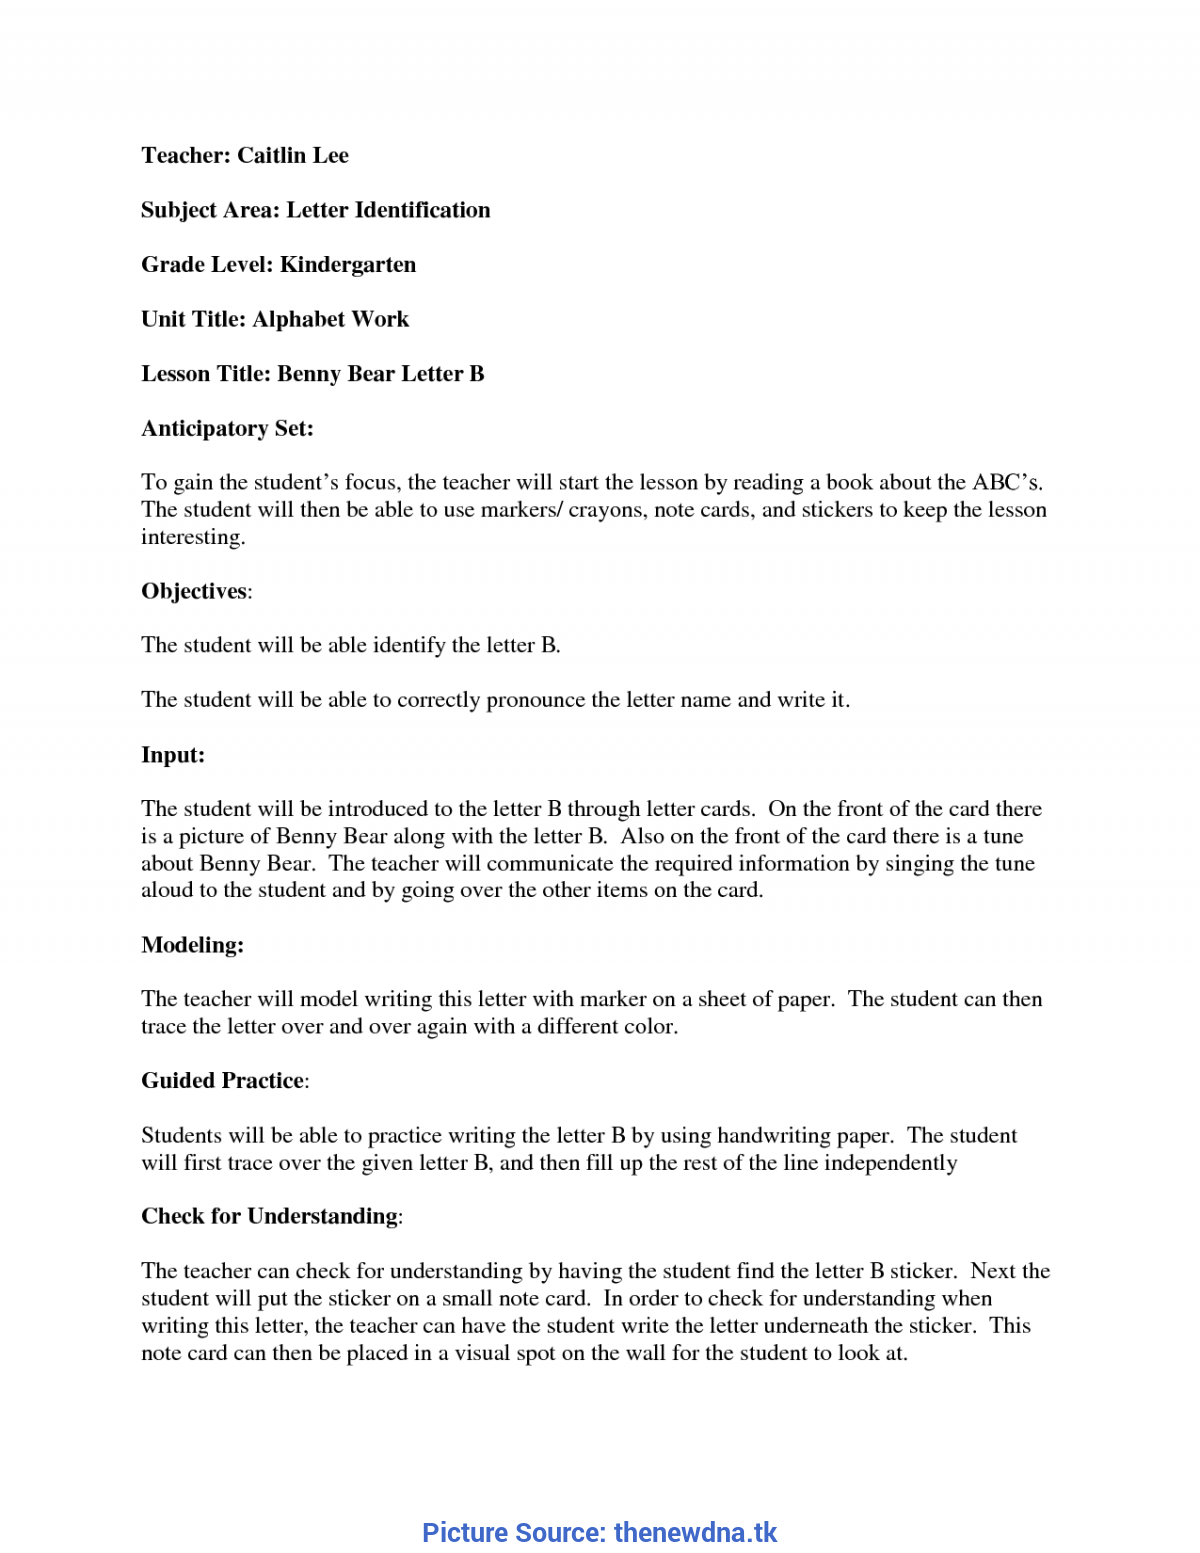 Excellent Blank Lesson Plan Template Madeline Hunter Madeline Hunter Lesson Plan Temp